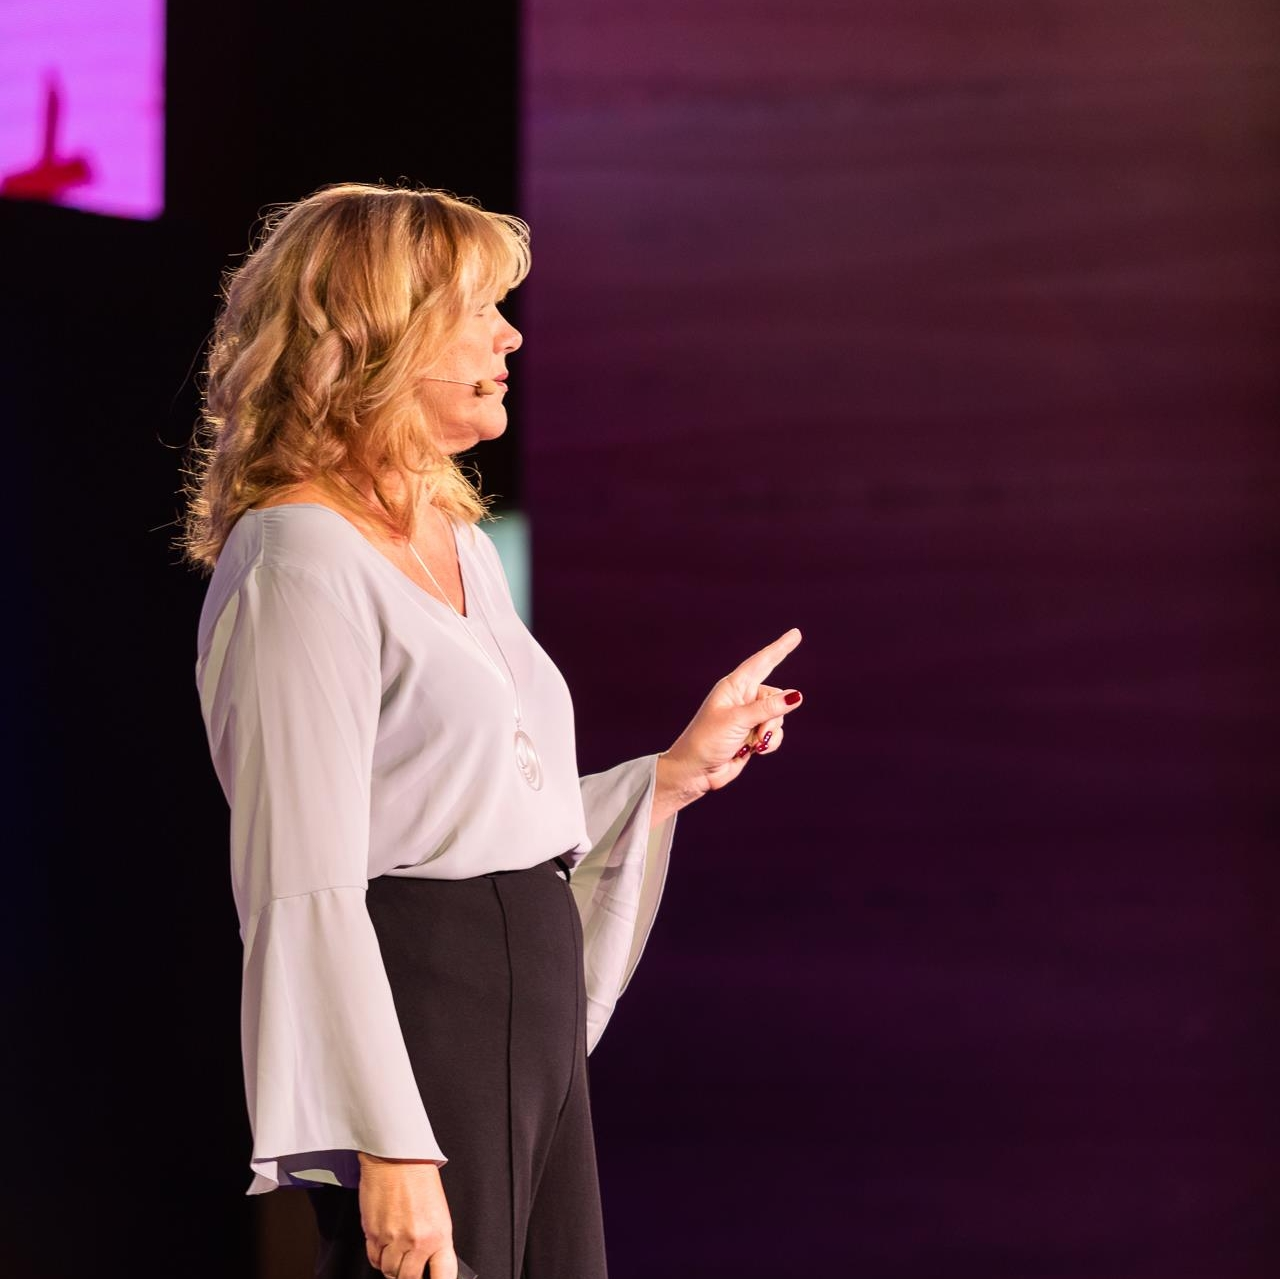 Dr. Tammy speaking on: The Trouble with Relationships & The New Monogamy at TEDX Bucharest